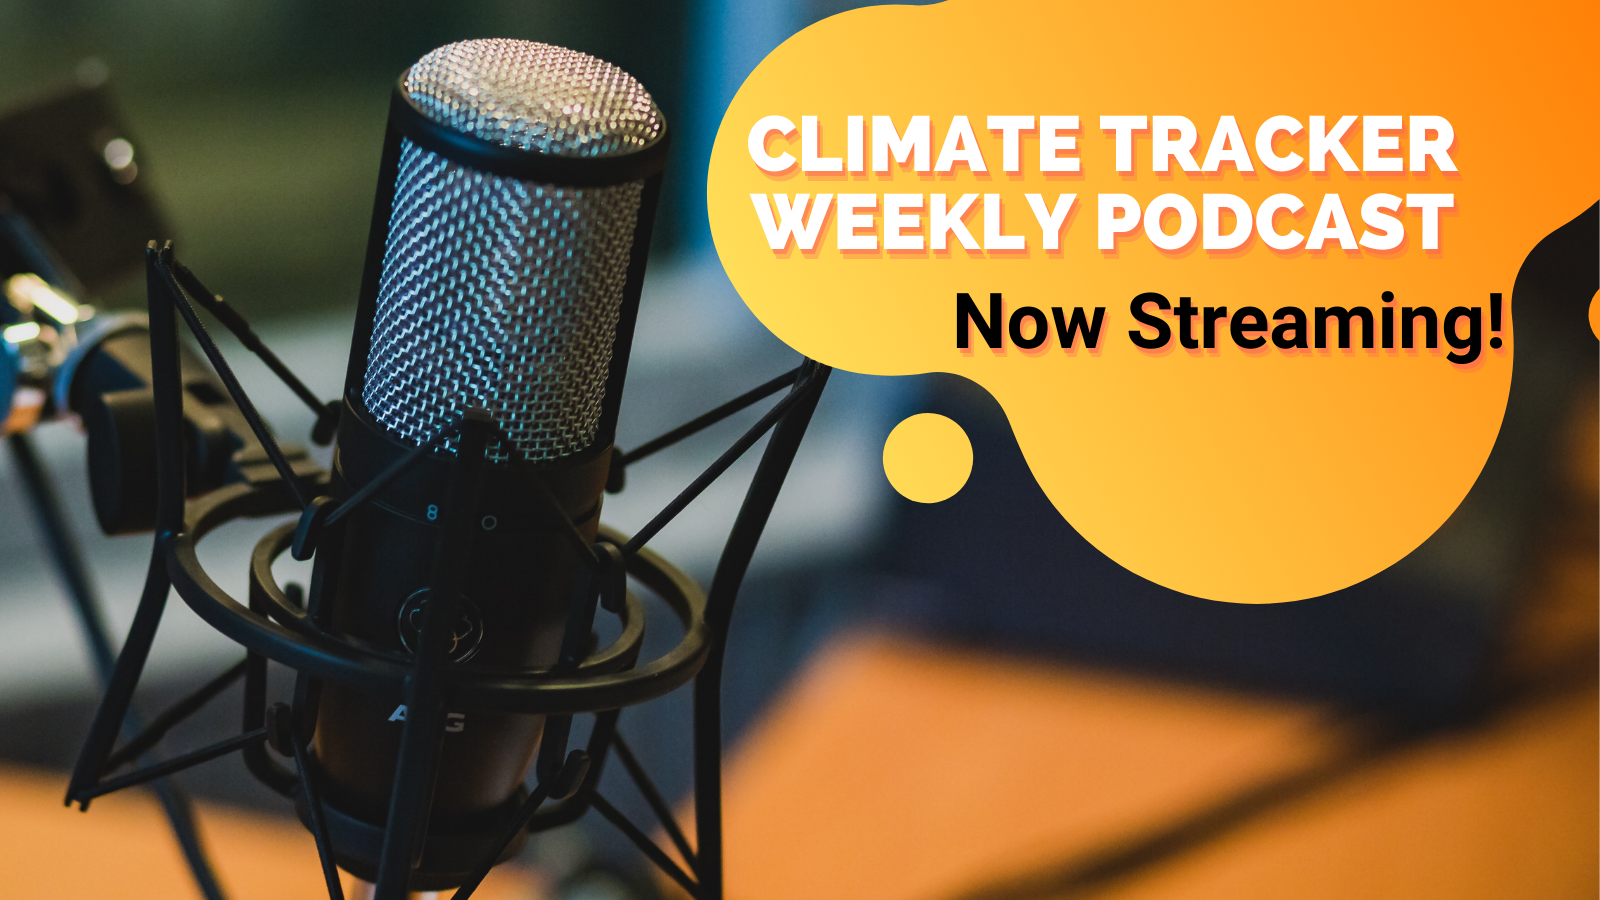 Climate Tracker Weekly Podcast now LIVE! Subscribe Today!